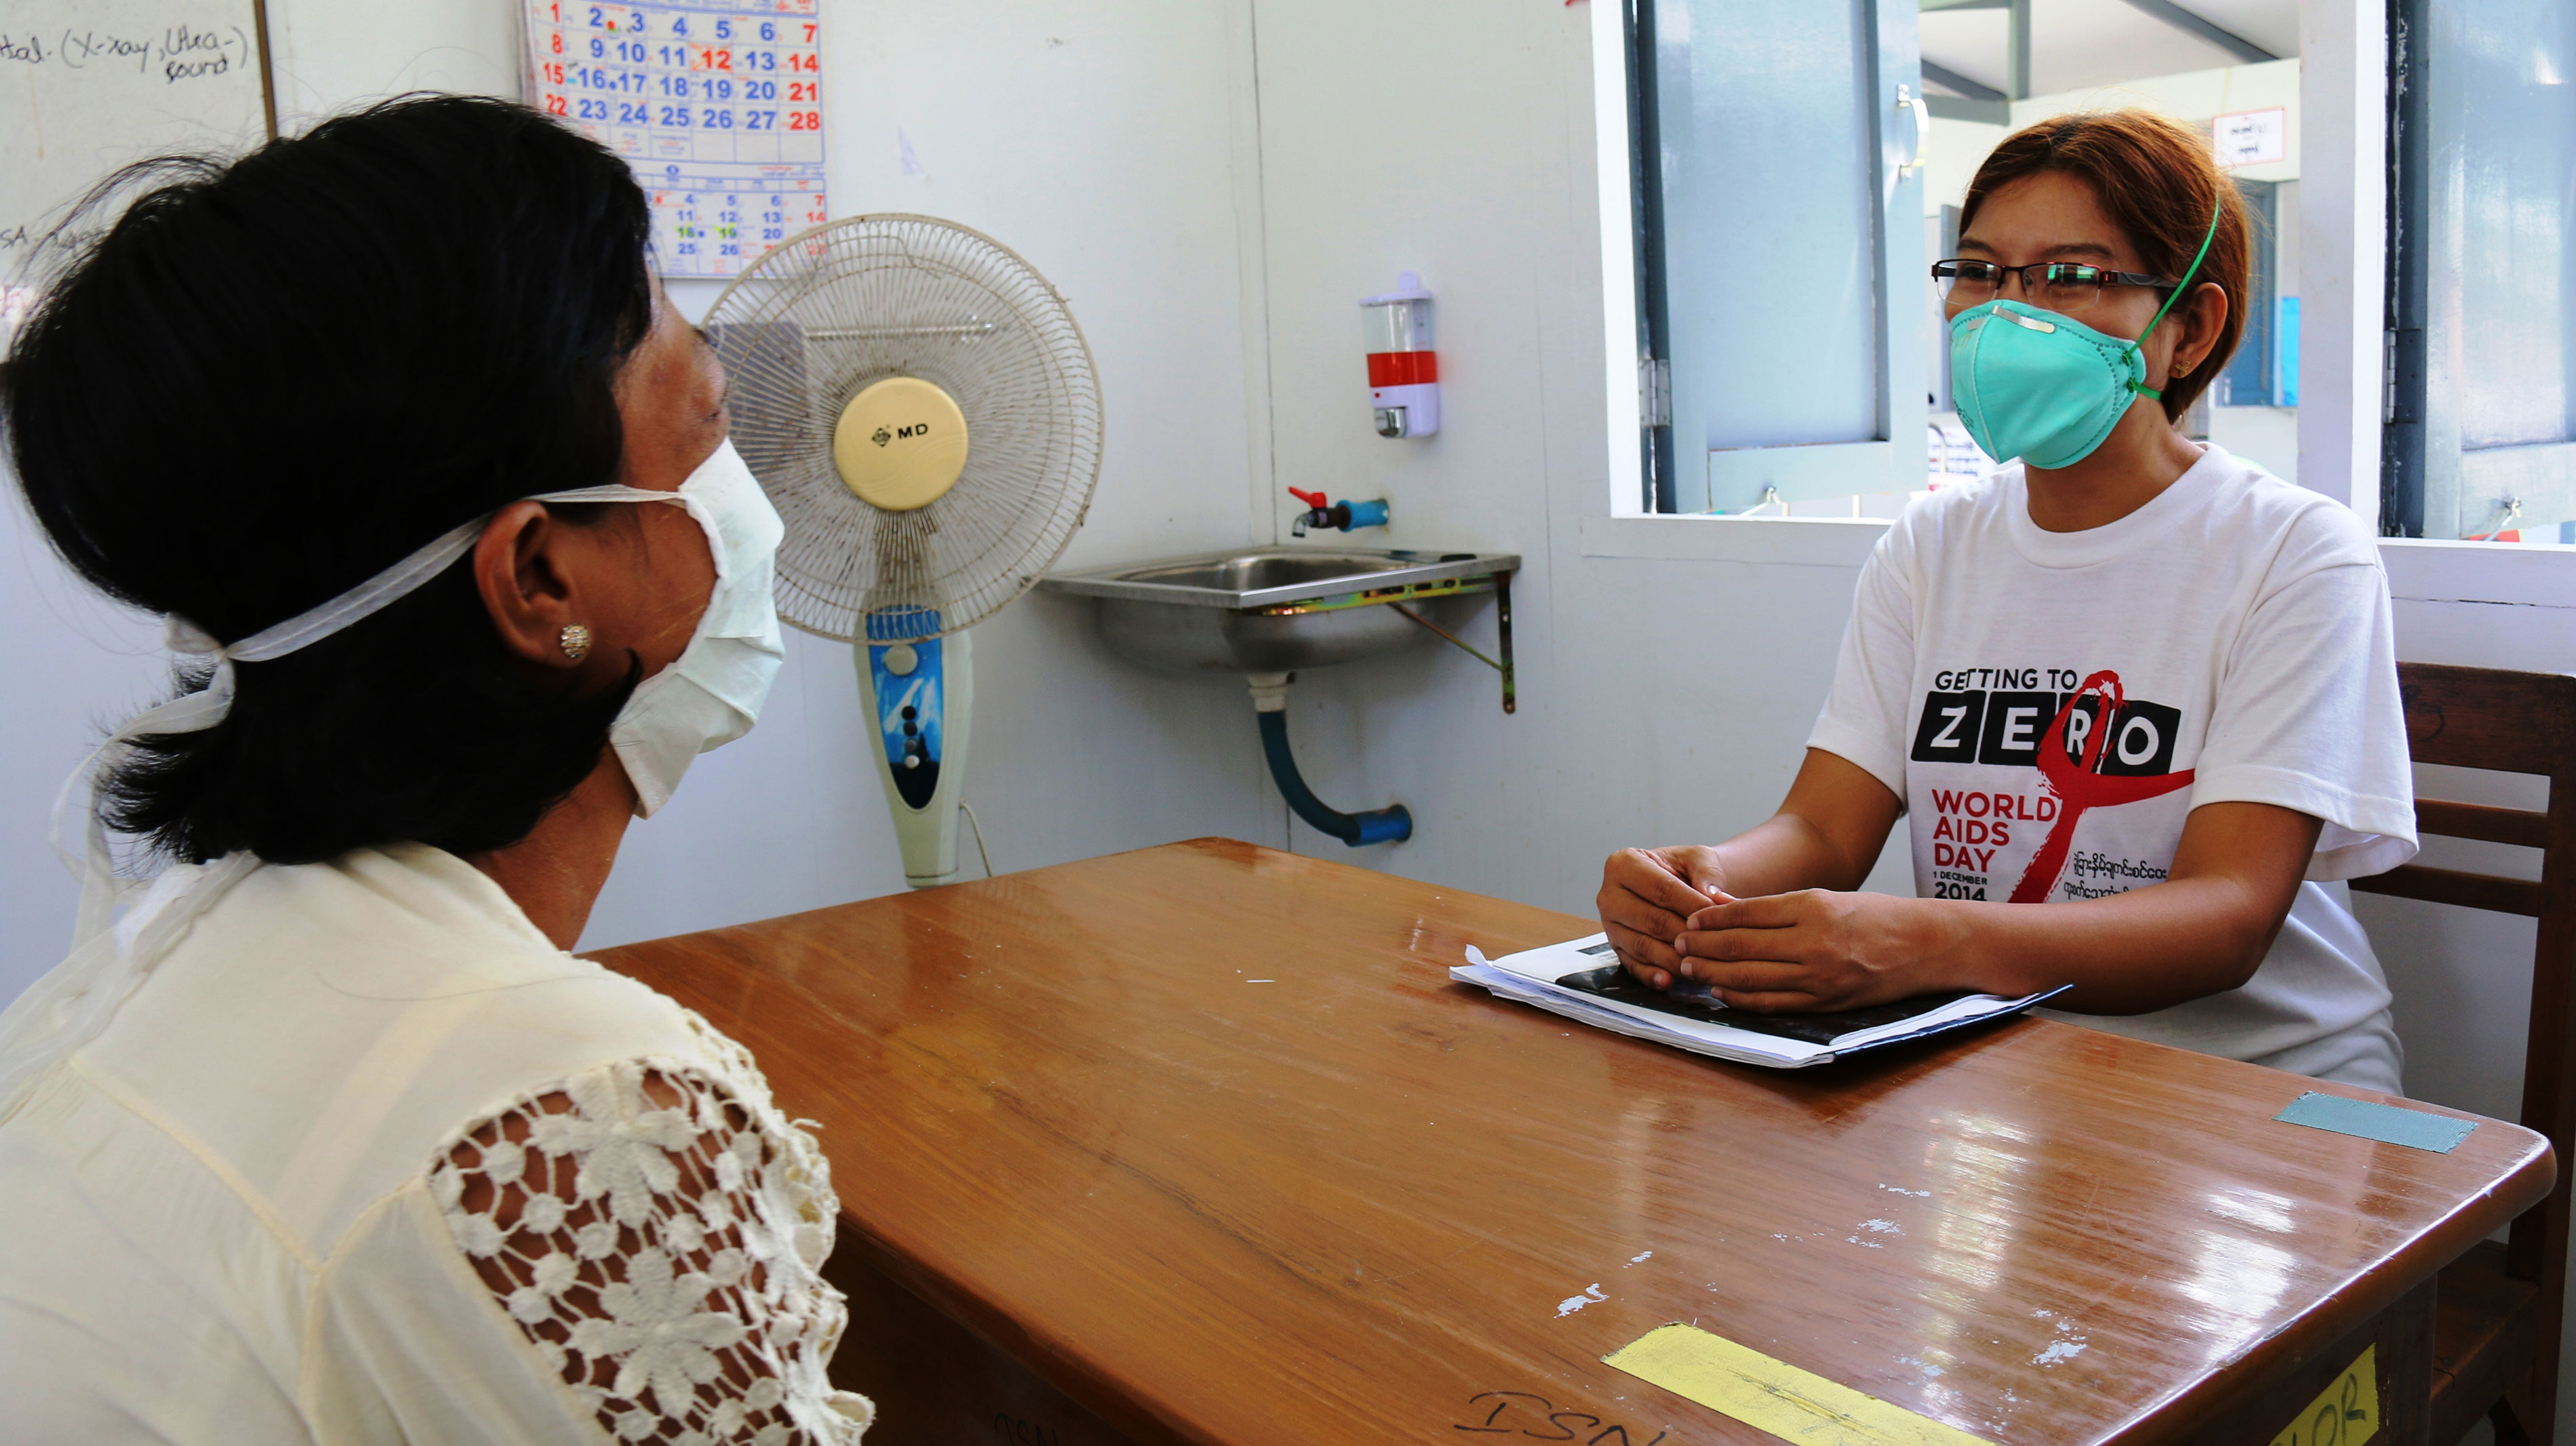 MSF staff conducts a medical consultation with a female MDR-TB patient at MSF's Insein Prison clinic, Yangon, Myanmar.